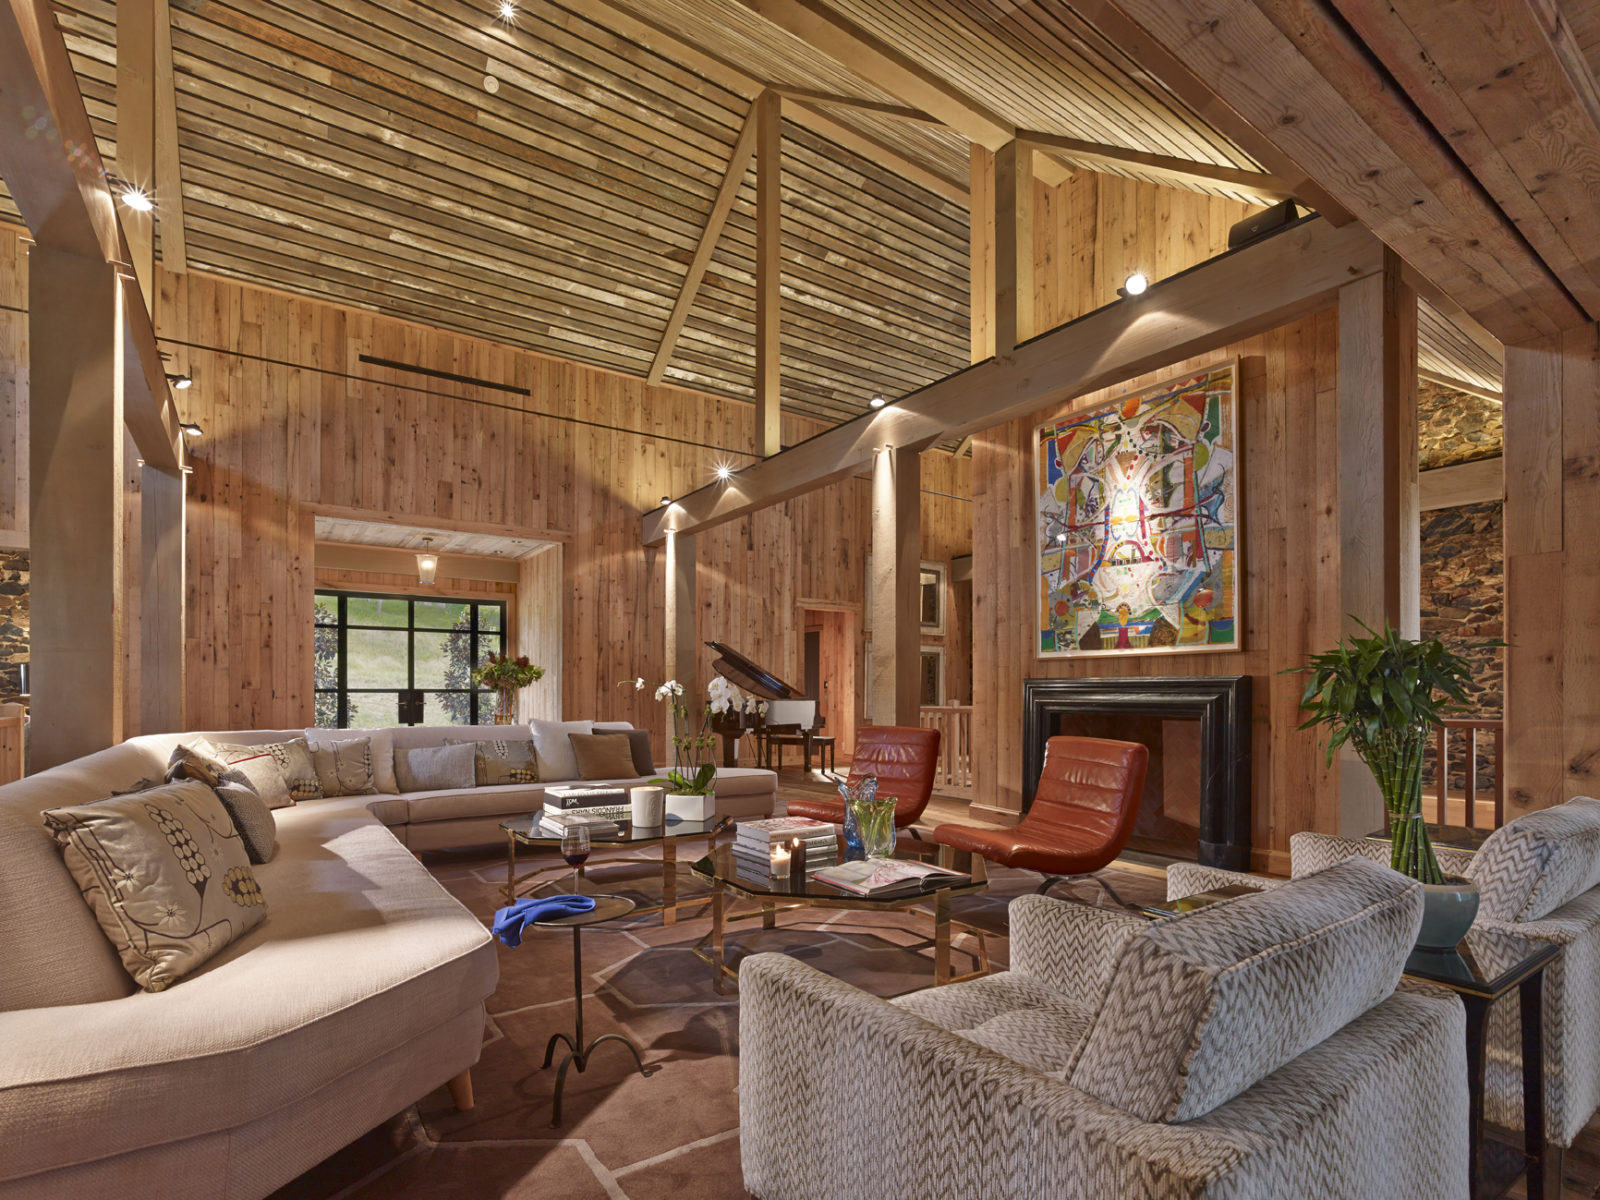 pennsylvania barn residence don pearse photographers architectural interiors advertising design photography